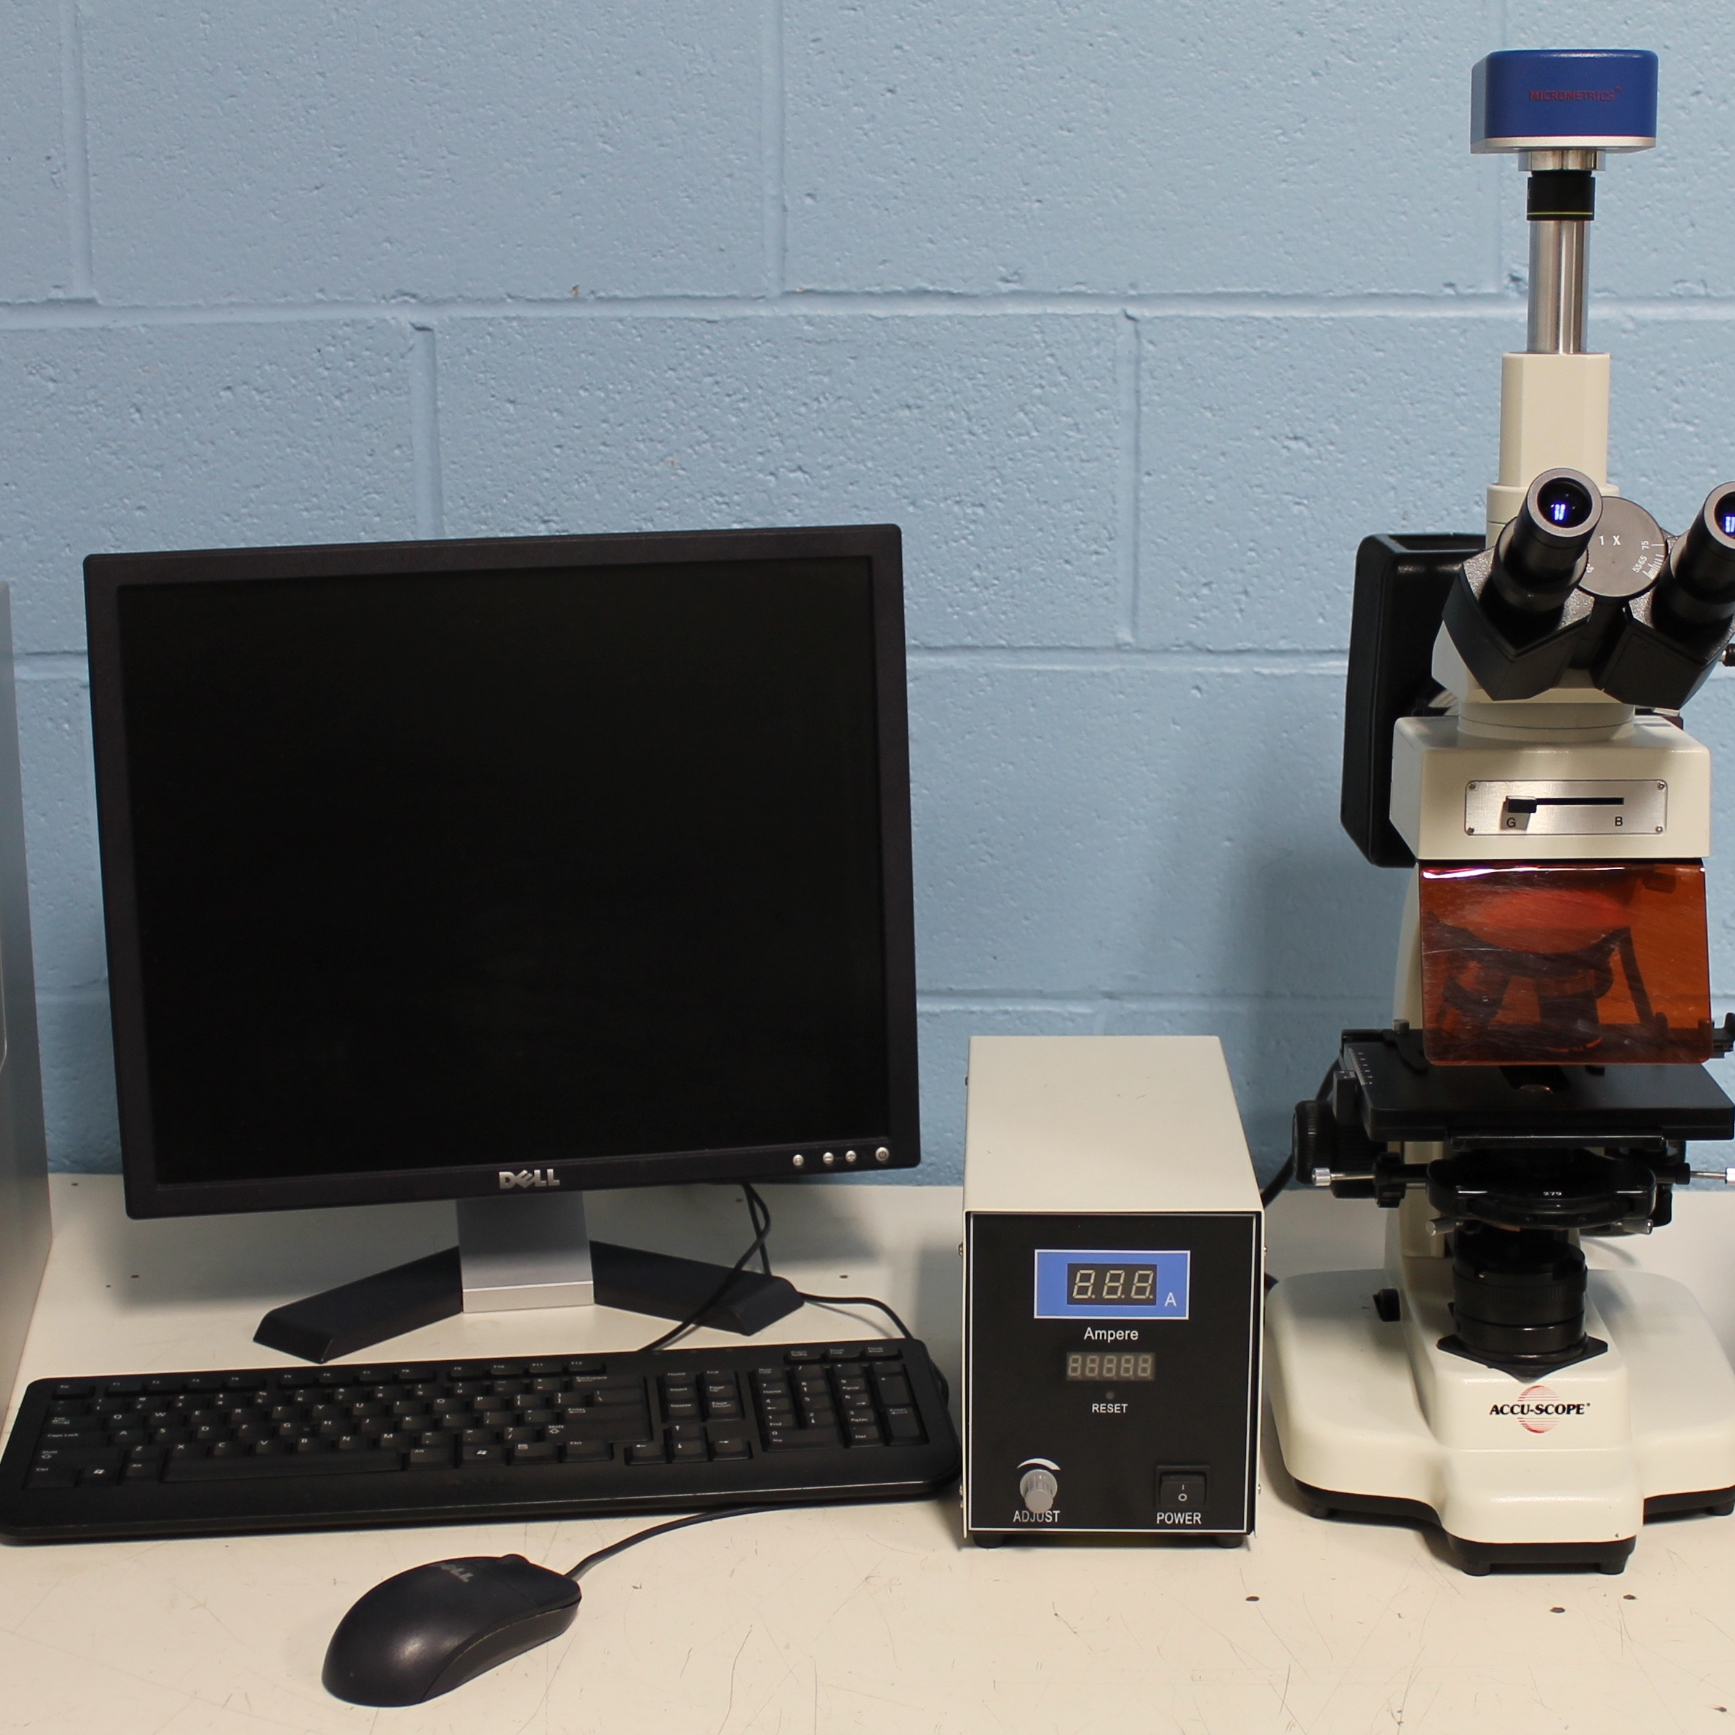 Accu-Scope 3016EPI Microscope with Neutec Group Flash and Grow Colony Counting System Image